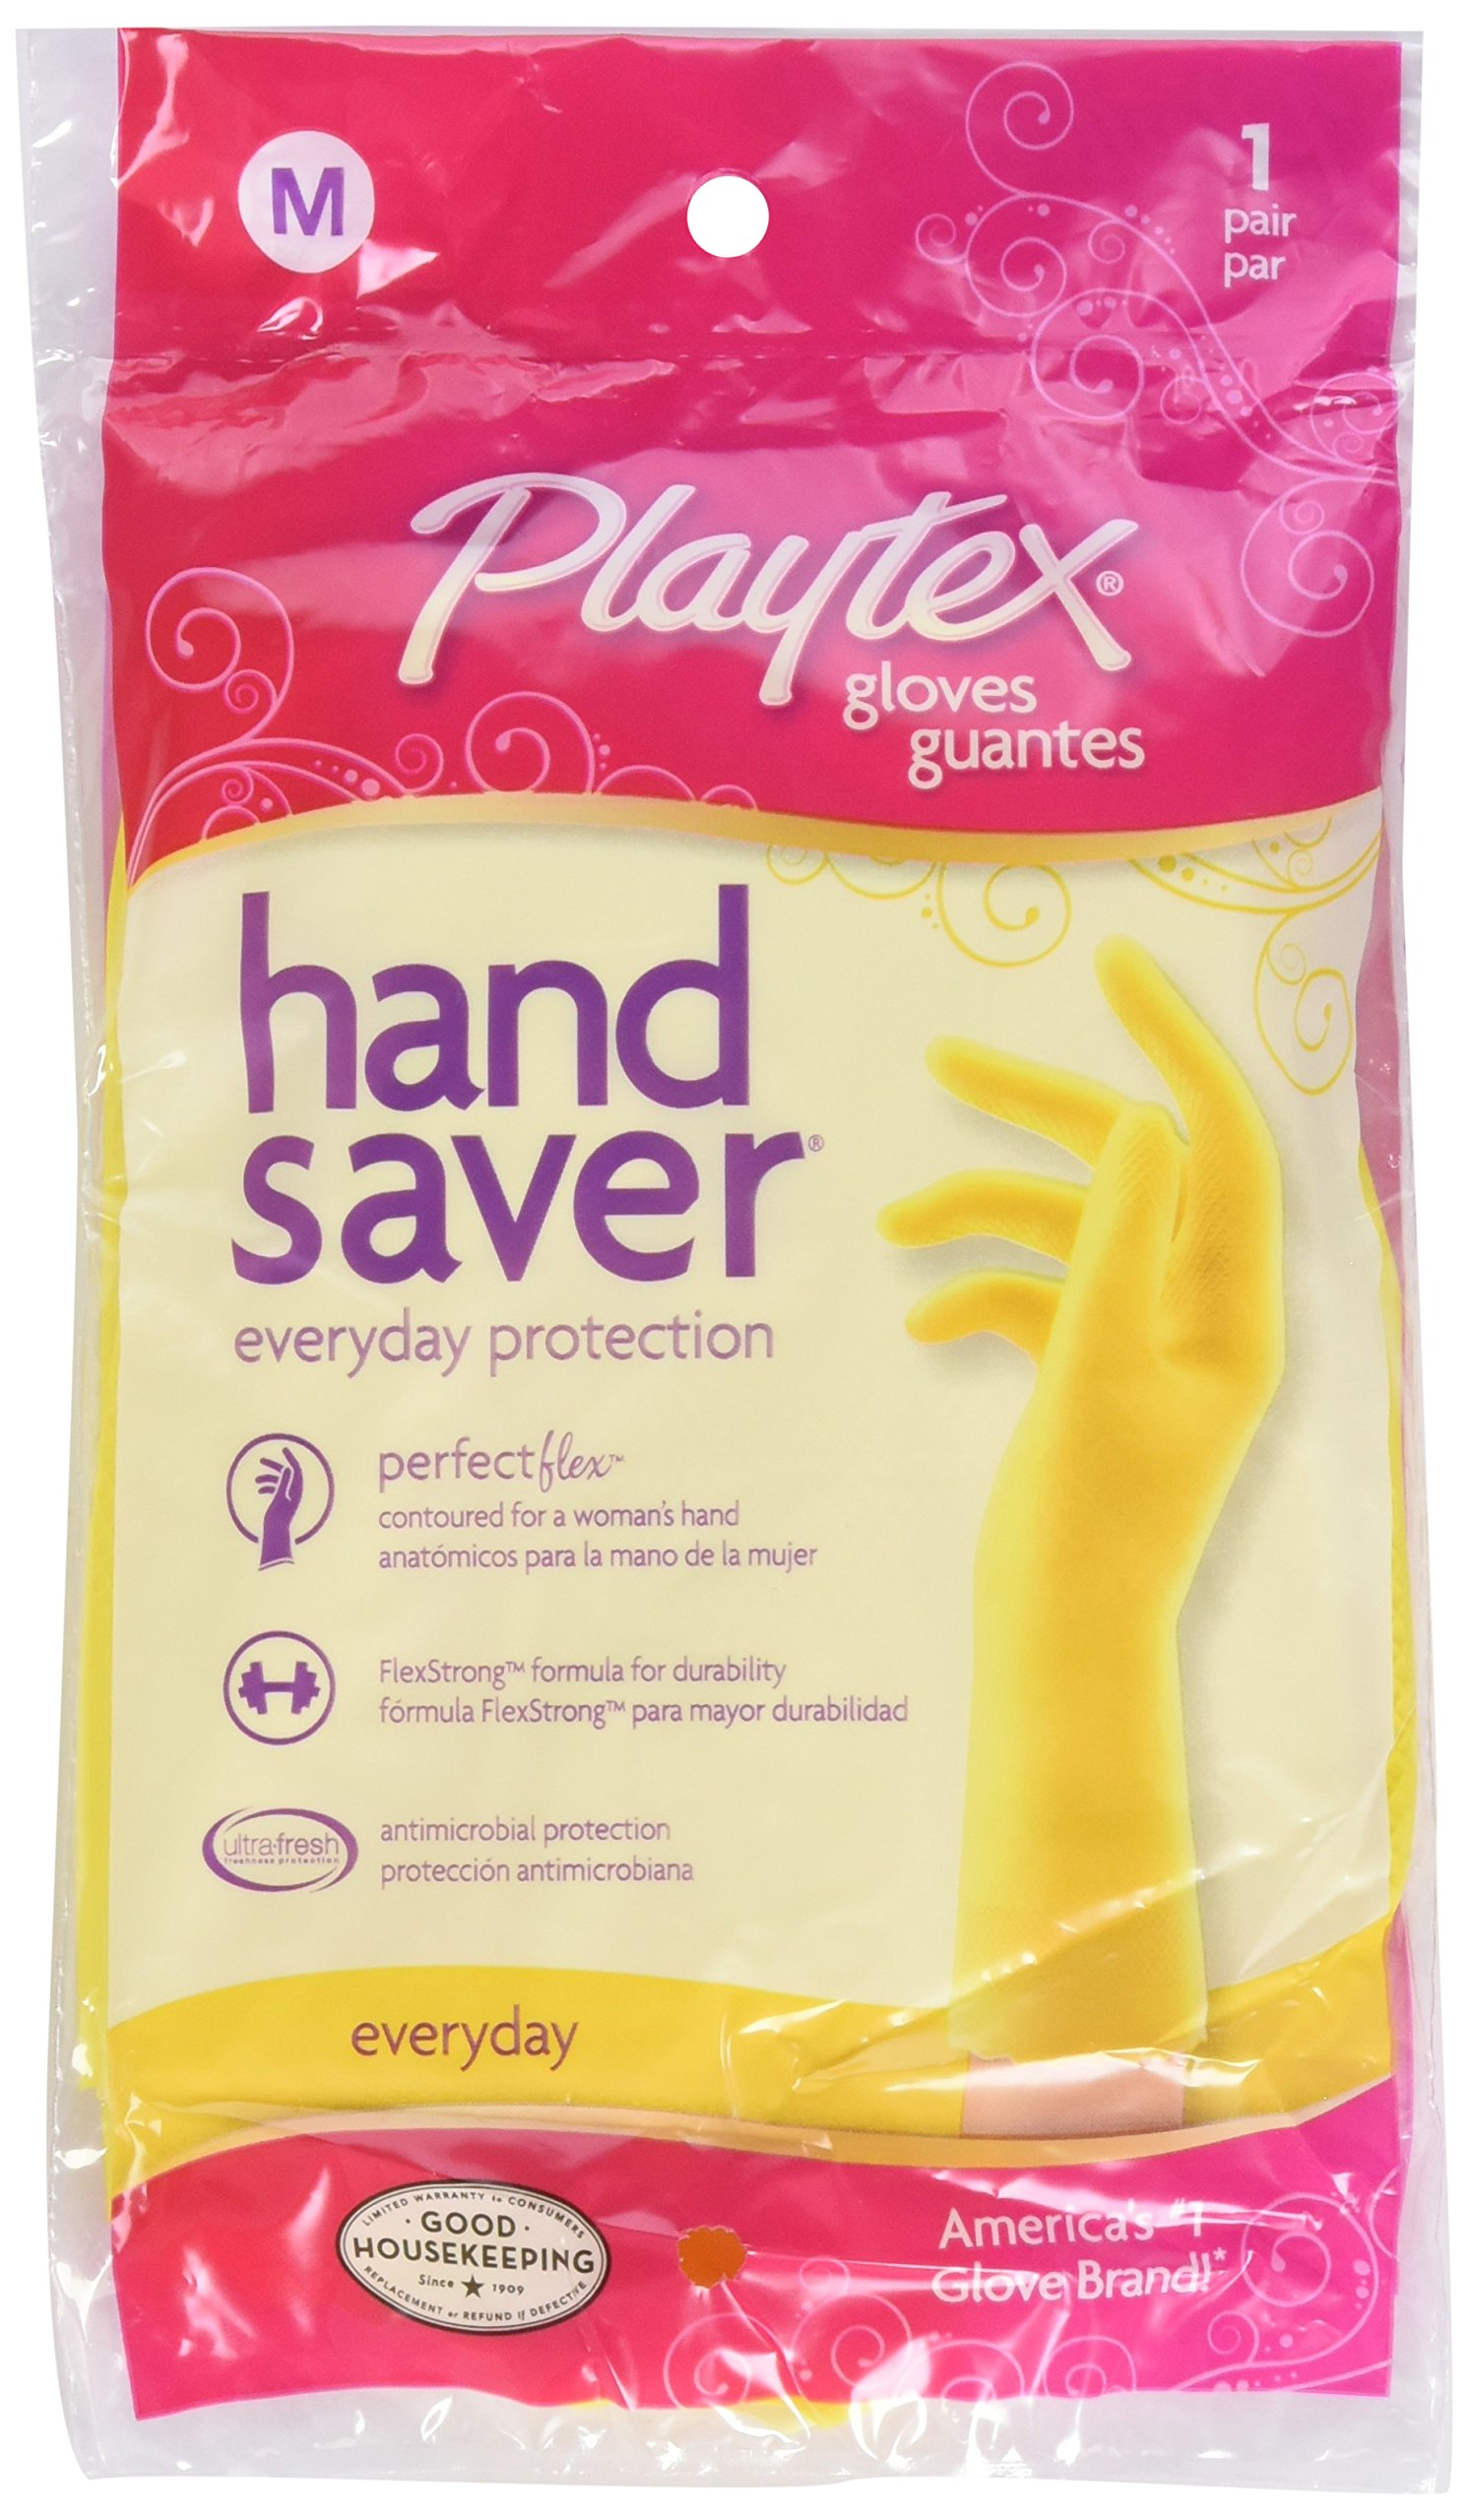 Playtex Handsaver Reusable Rubber Gloves (Large, Pack - 6) by Playtex